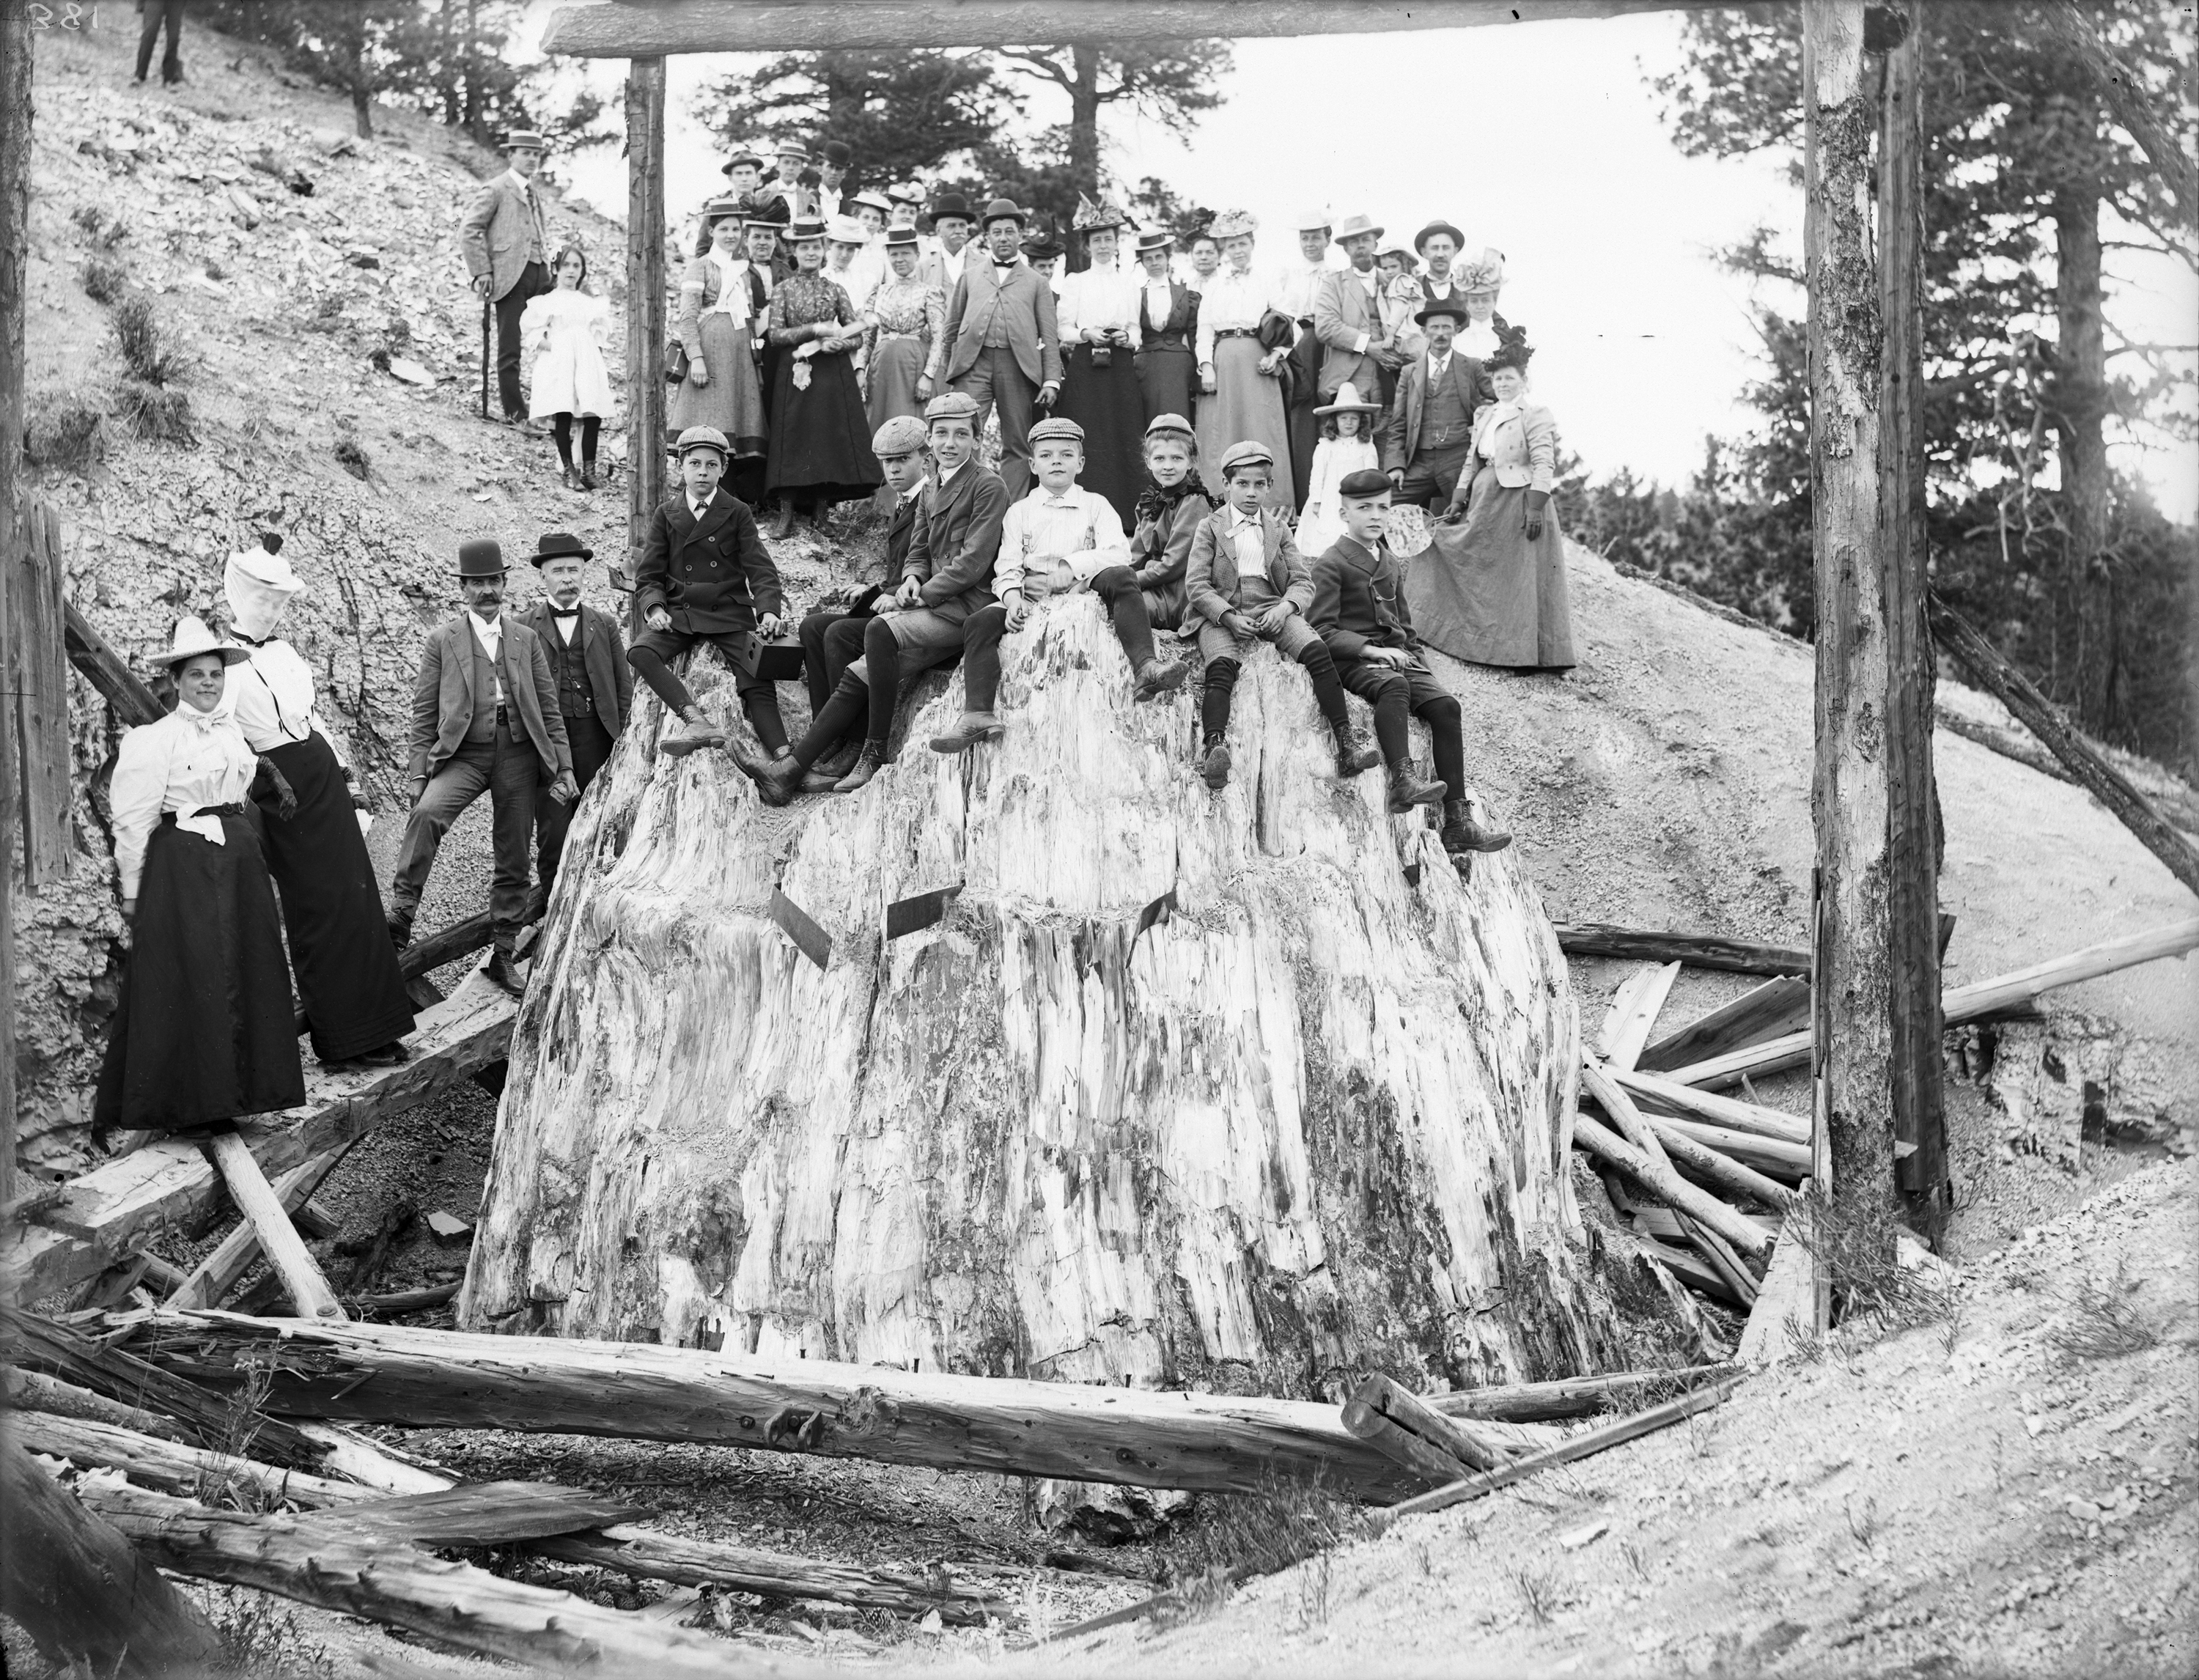 Photo of a group of people standing on the side of a hill, gathered around a giant petrified tree stump, upon which seven youngsters are seated. This photo dates to the 1870s, and the women in the group are wearing long dark-colored skirts with blouses and jackets and hats, the men wear suits and bowler hats, and the young boys are wearing knickers with long socks as well as hats.